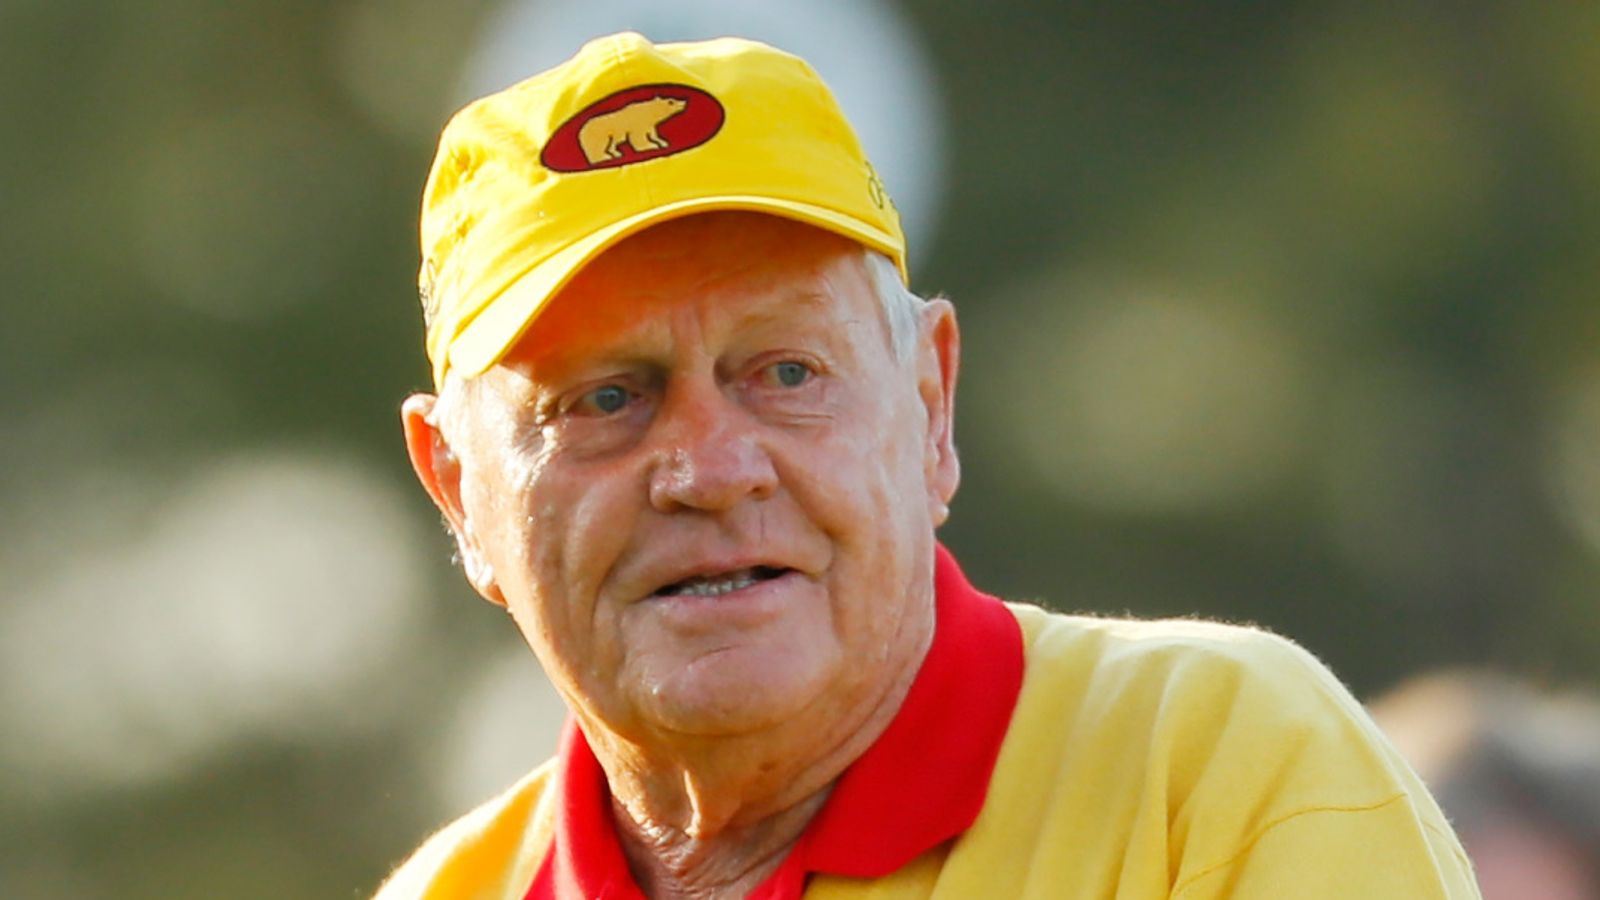 The Masters: Working alongside Jack Nicklaus at Augusta National